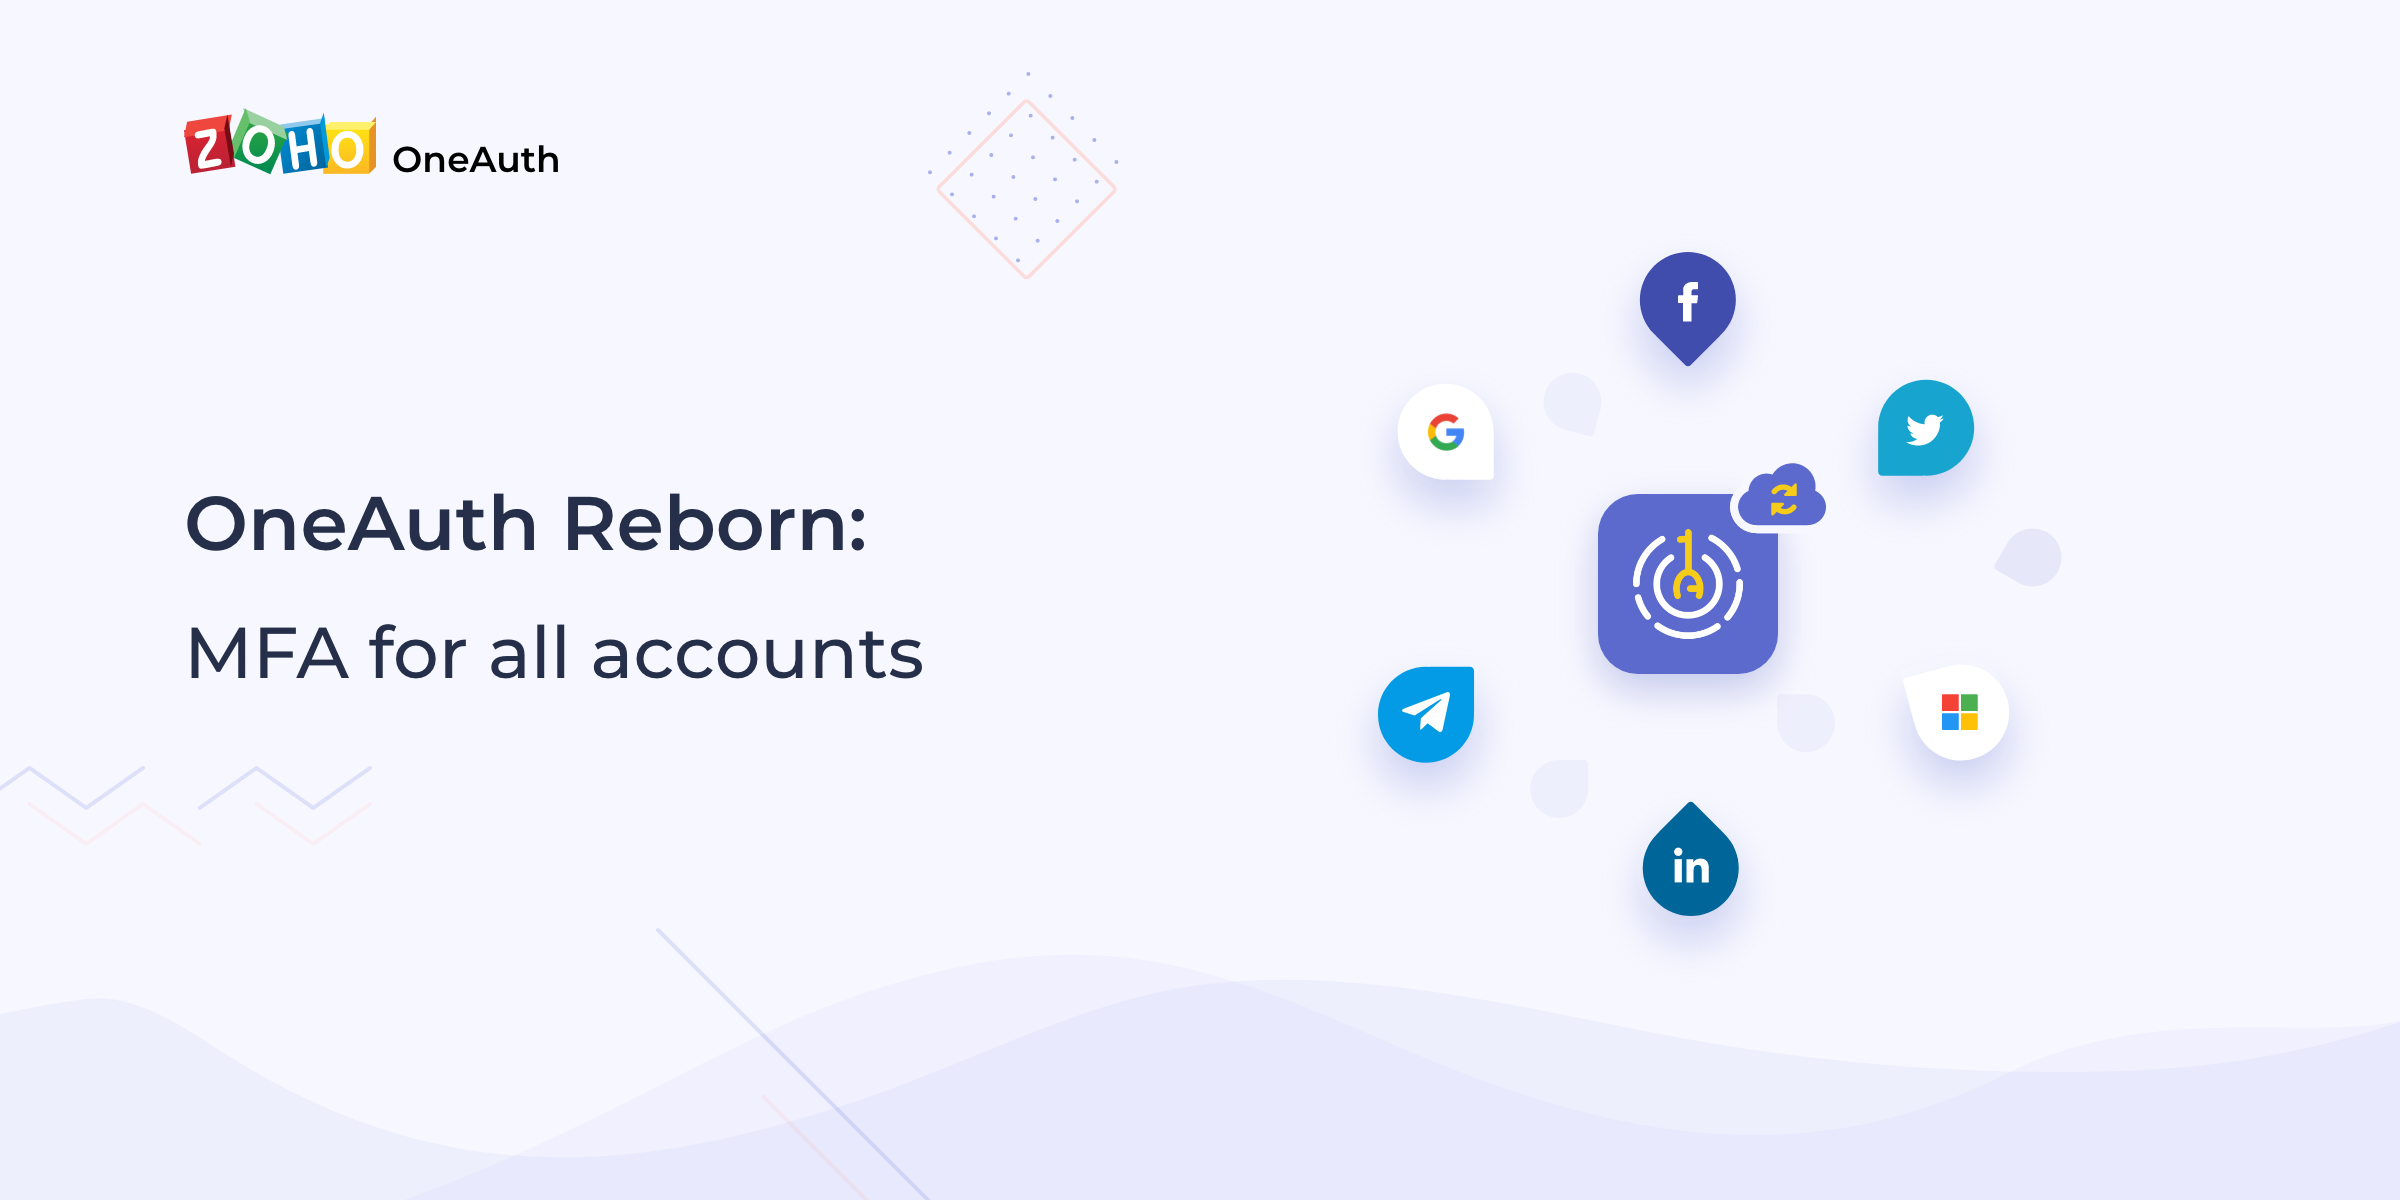 OneAuth Reborn: MFA For All Accounts